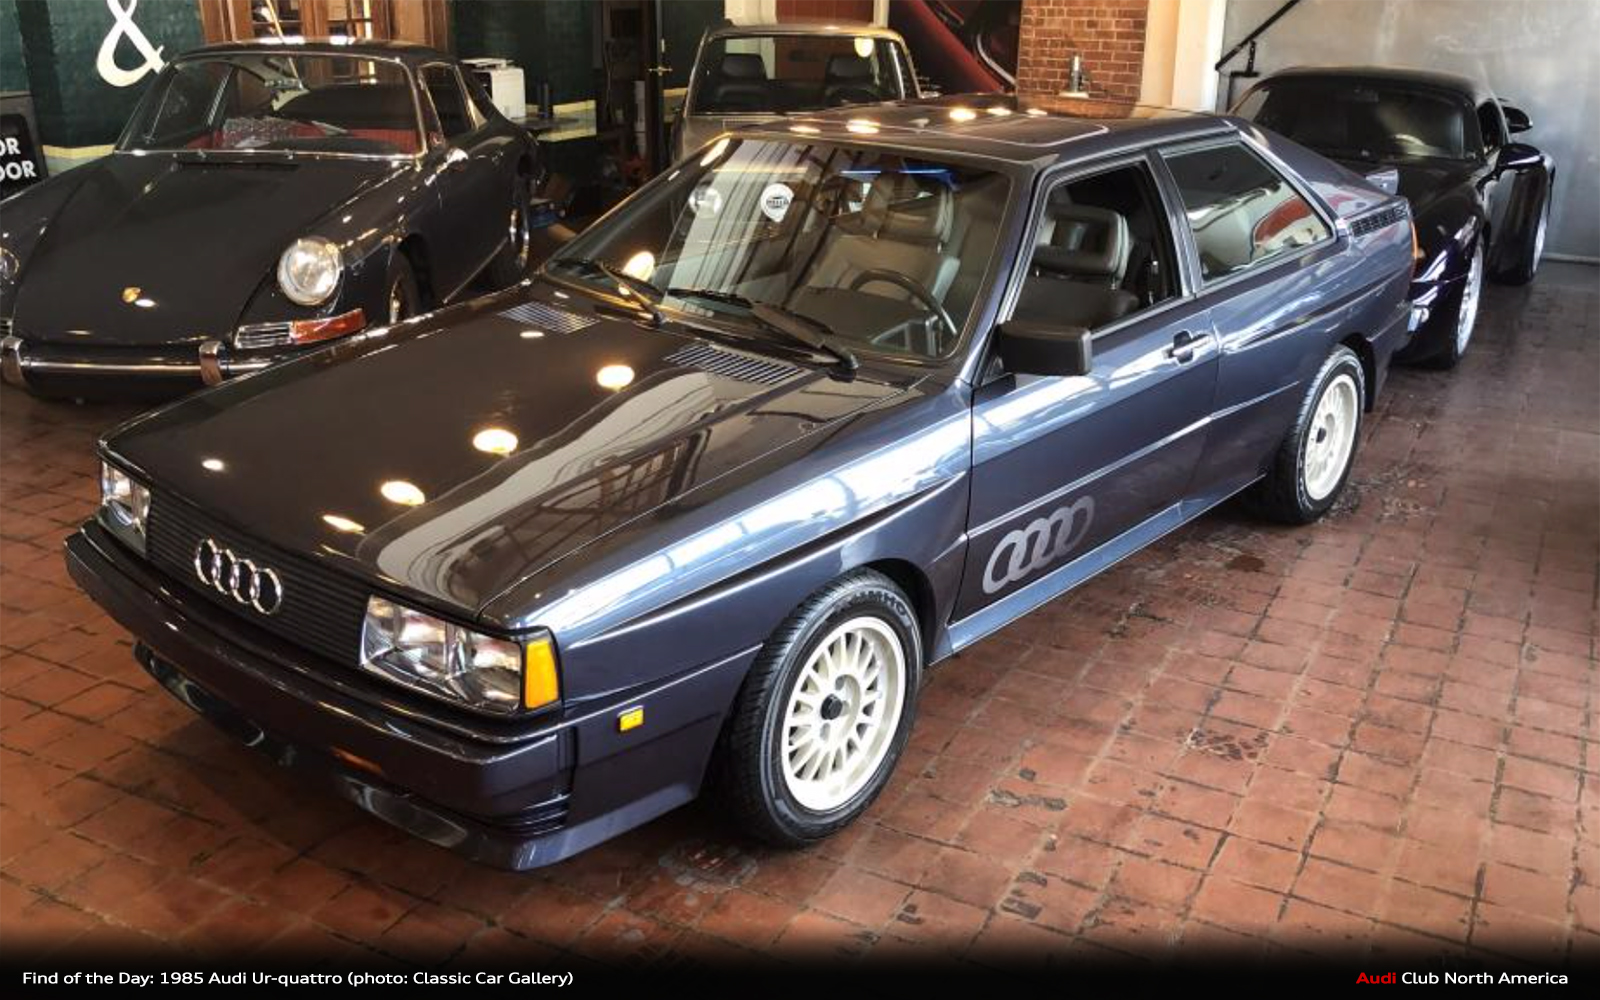 Find of the Day: 1985 Amazon Blue Audi Ur-quattro